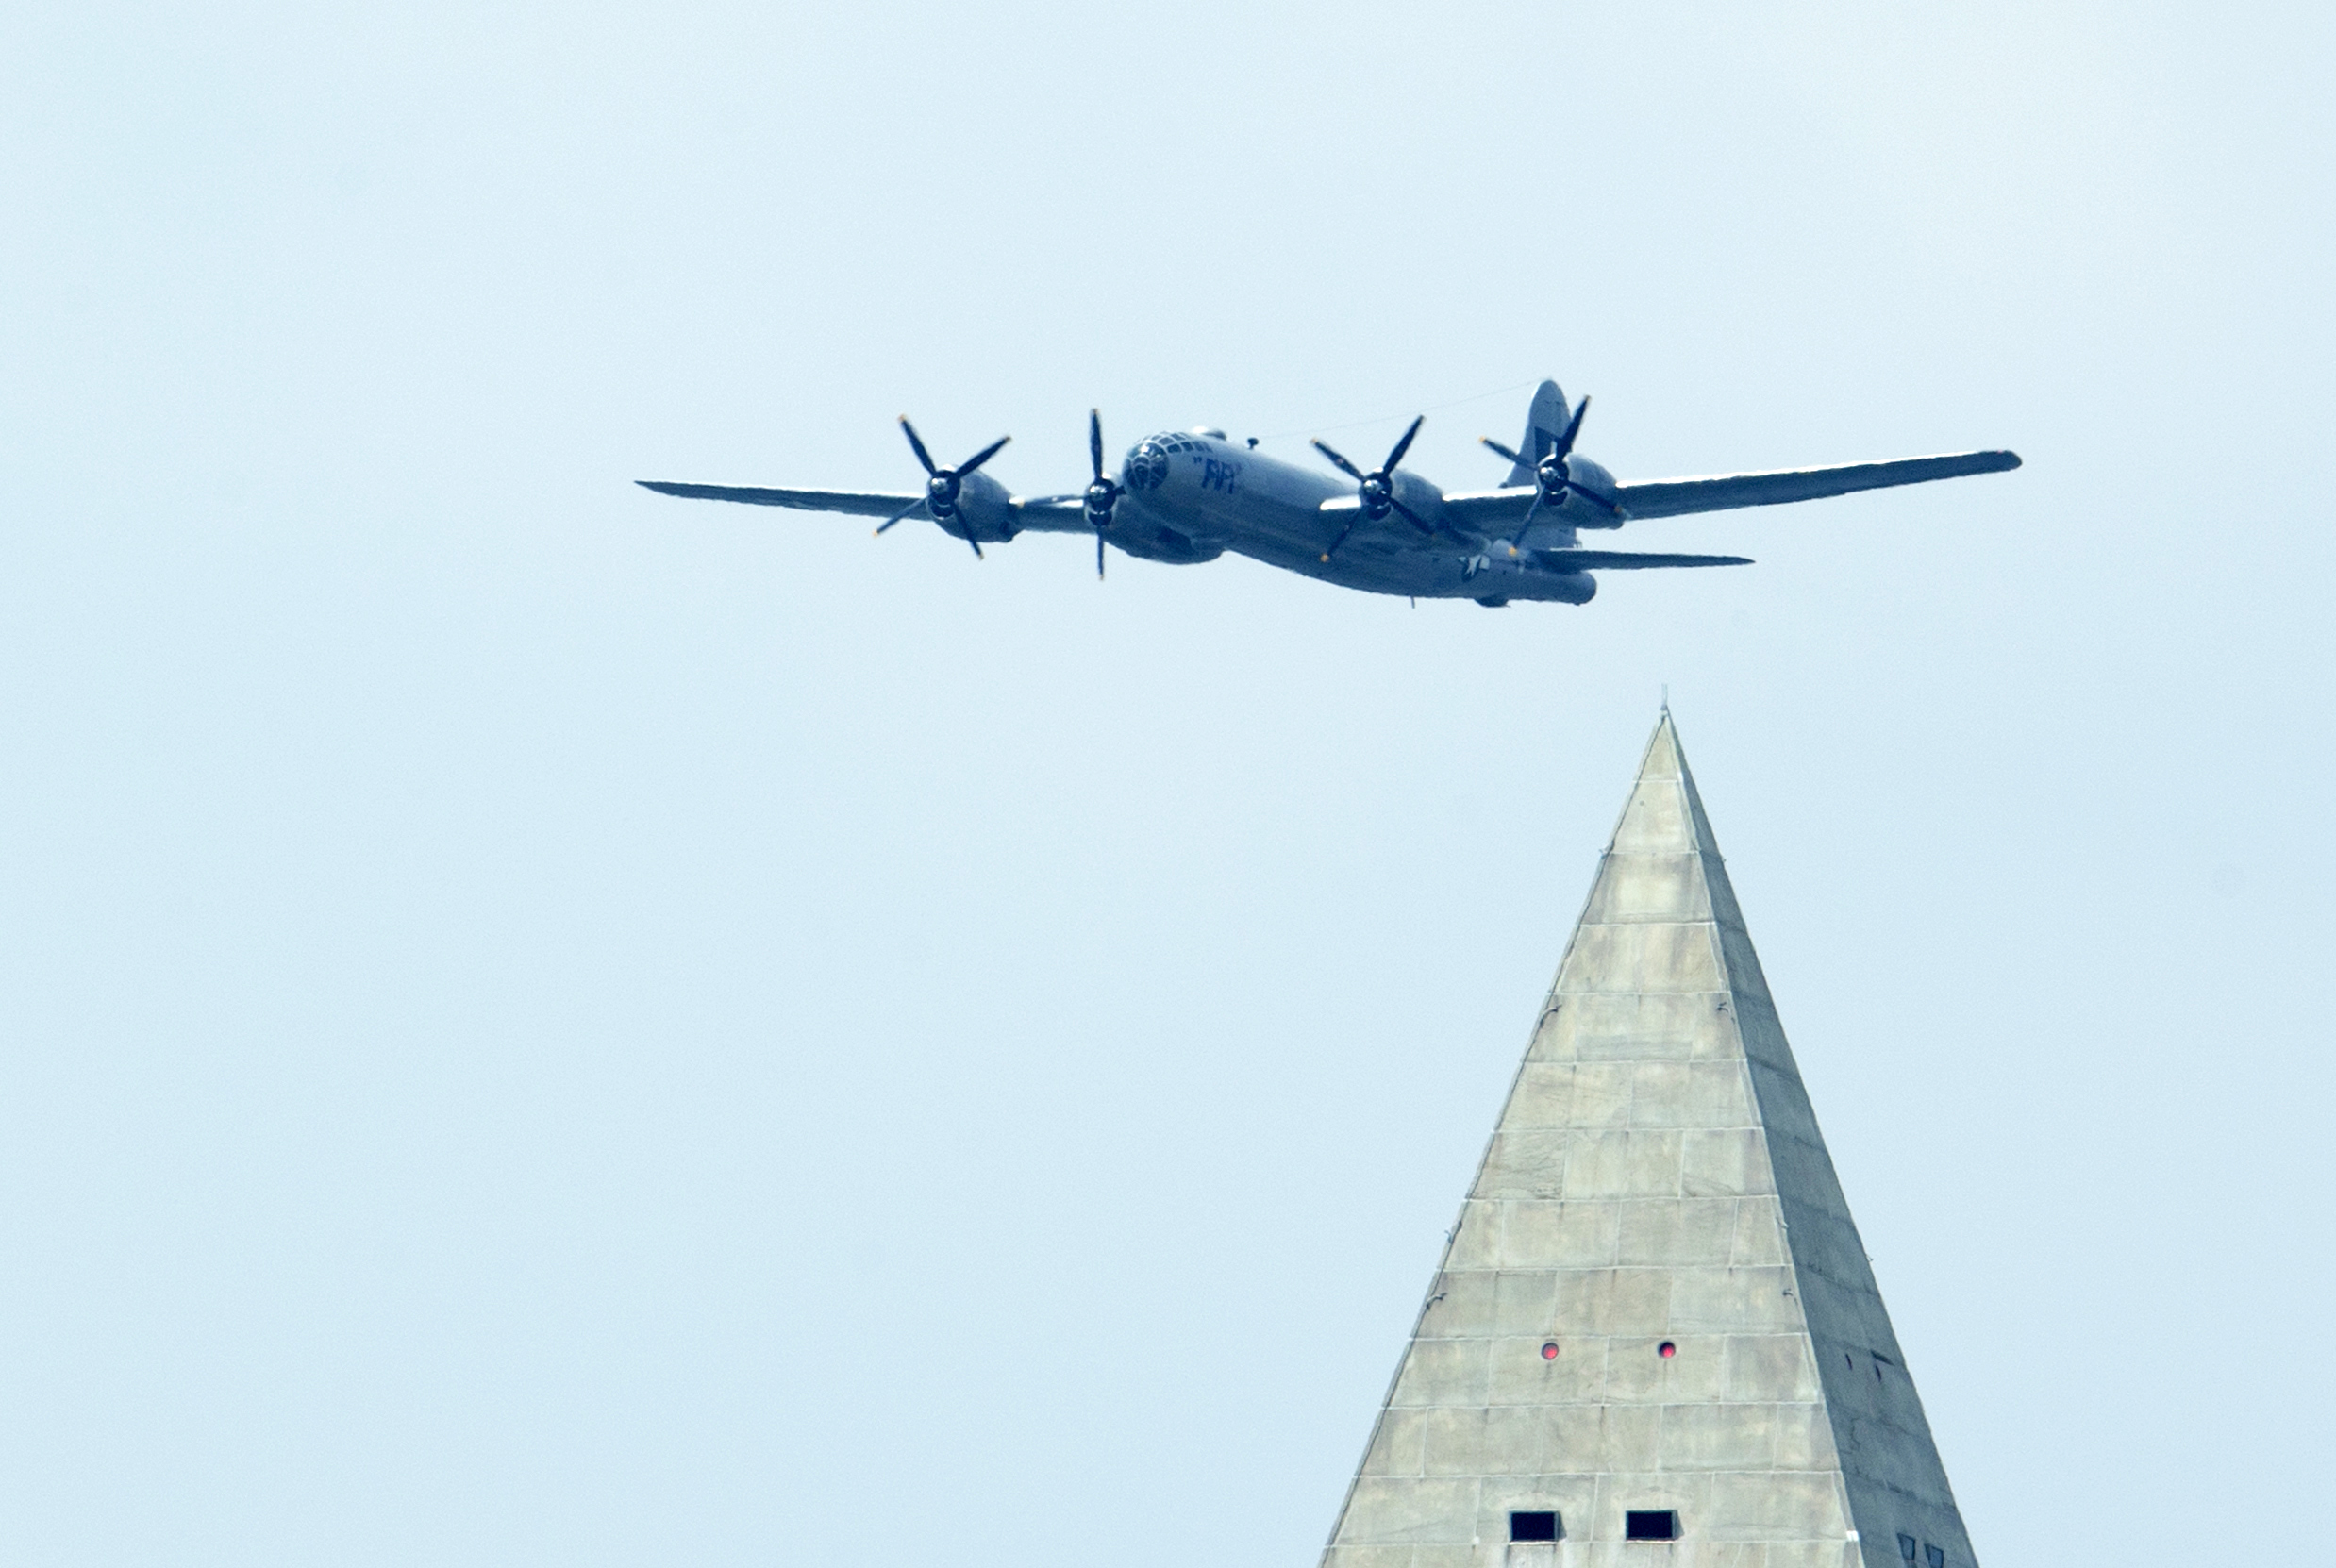 Photos: WWII warbirds rumble over D.C. area